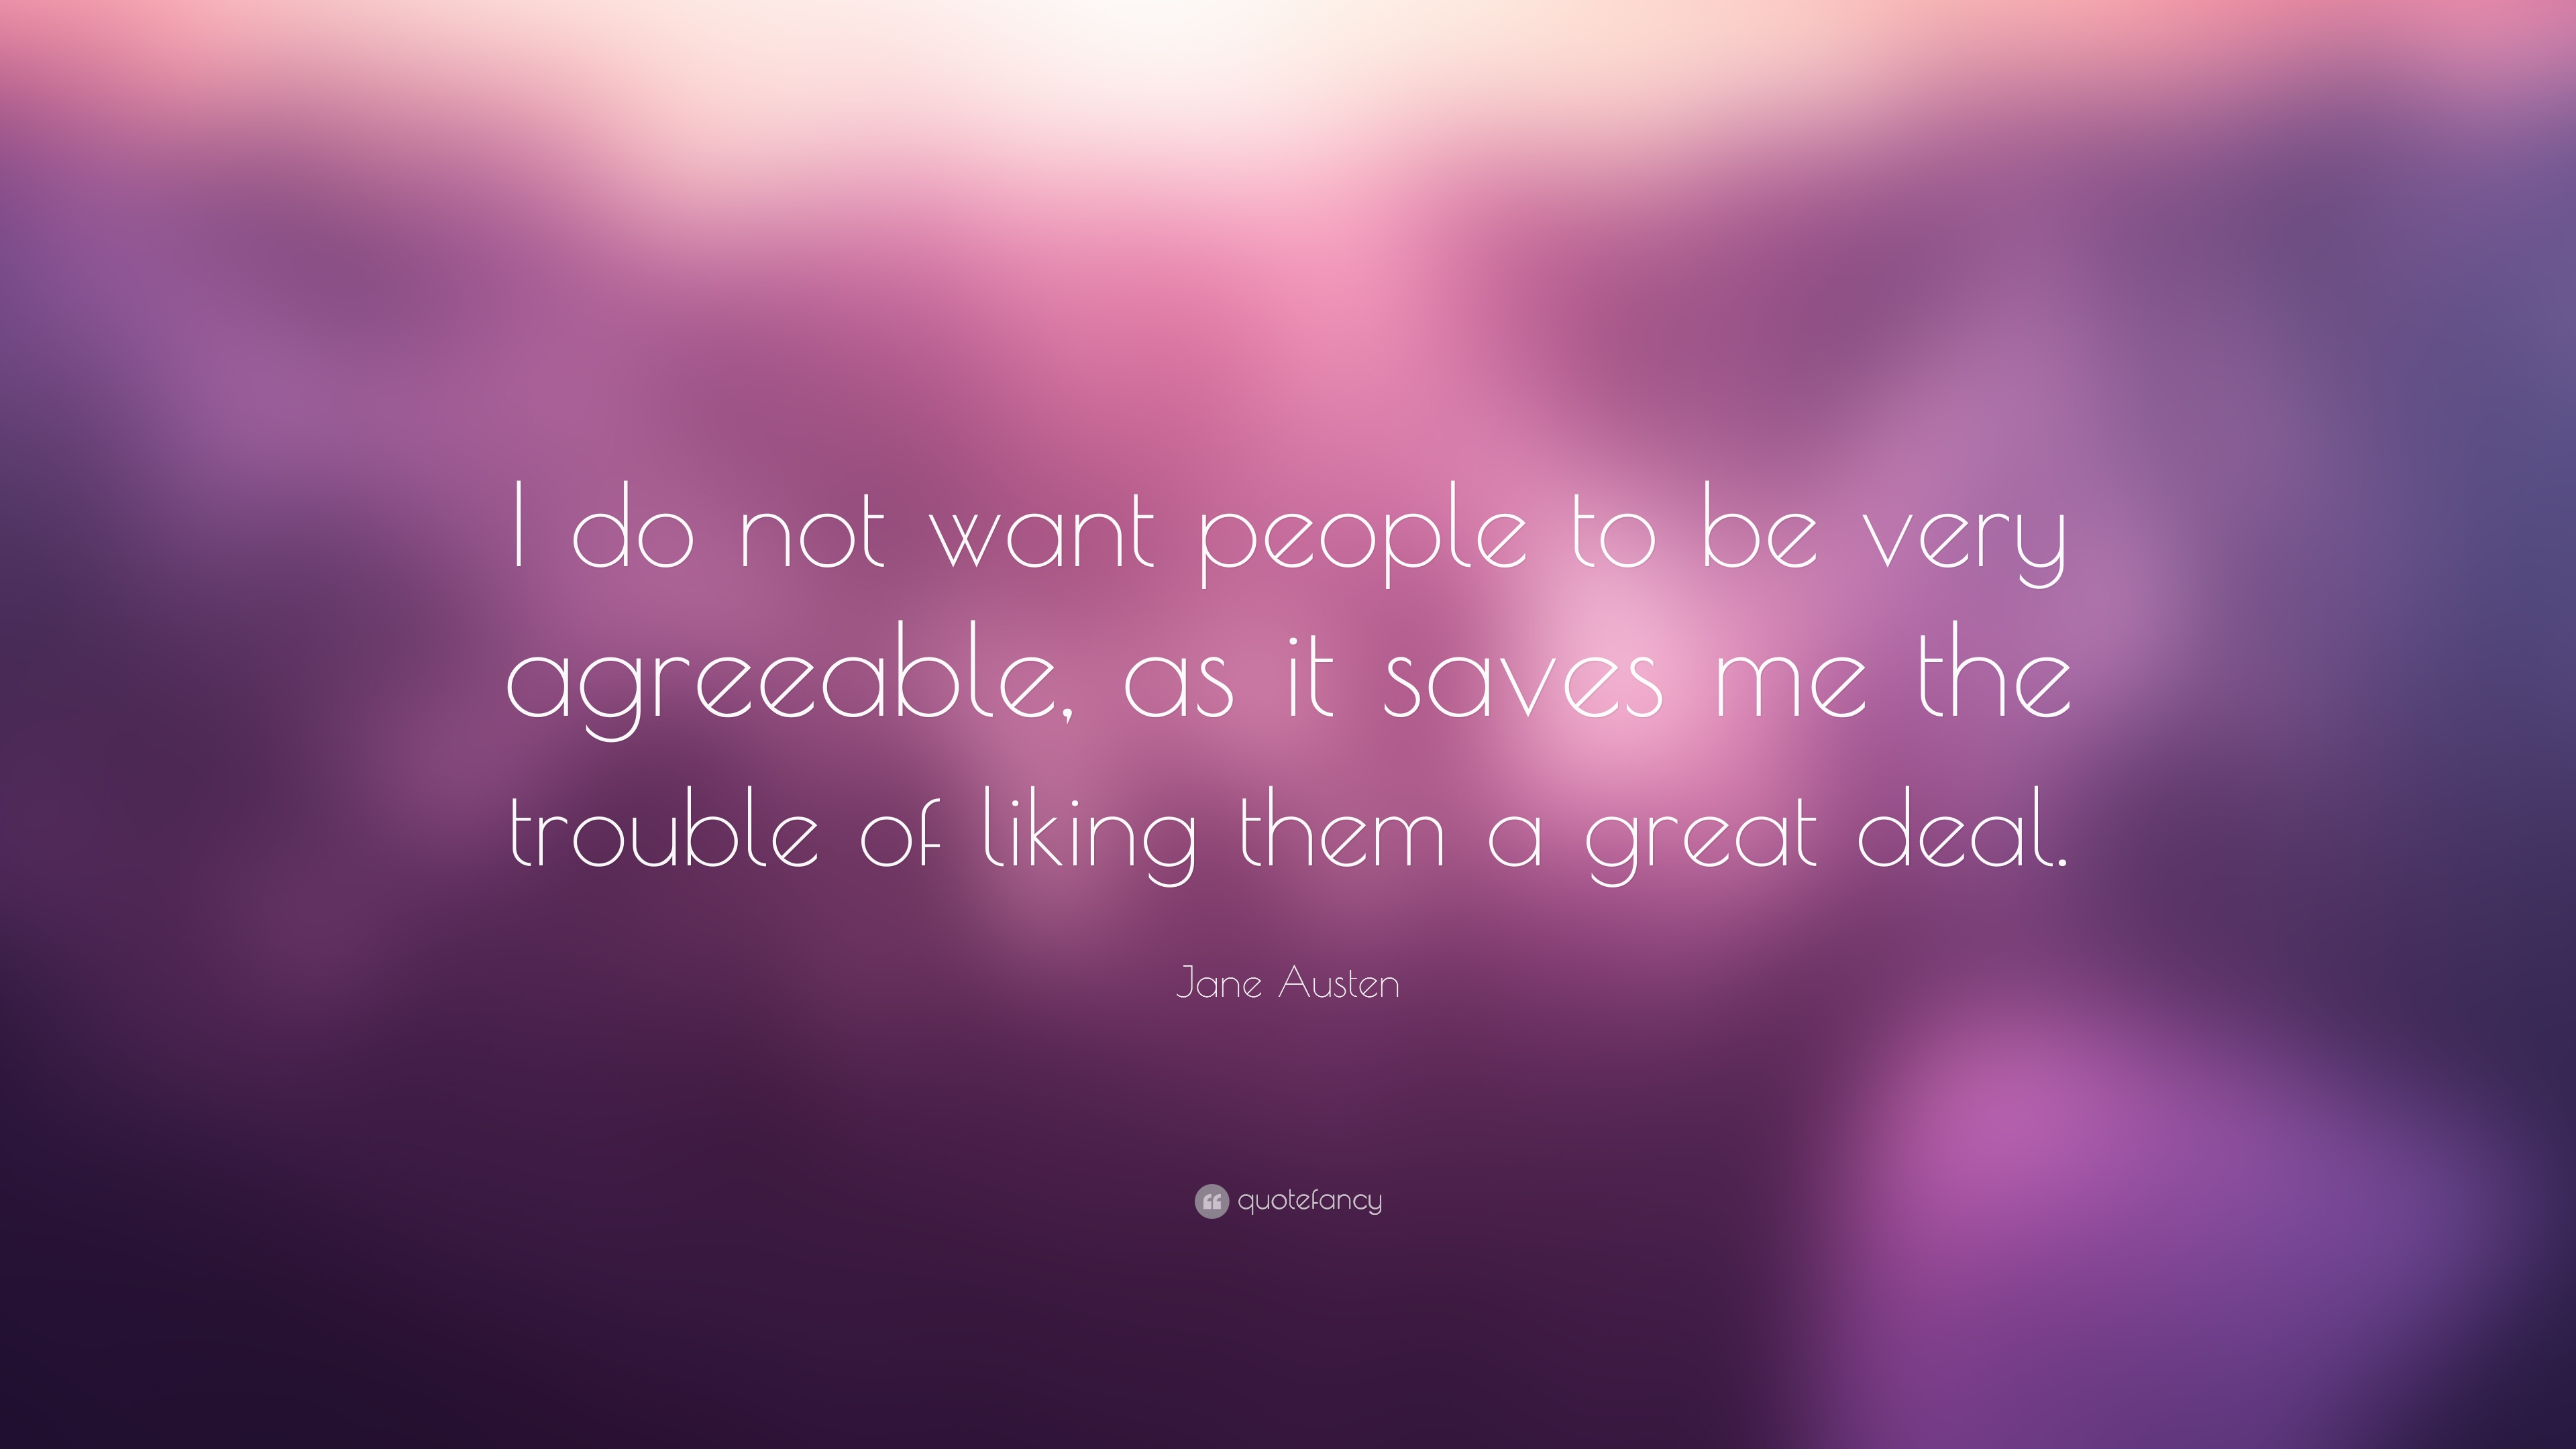 Jane Austen Quote I Do Not Want People To Be Very Agreeable As It